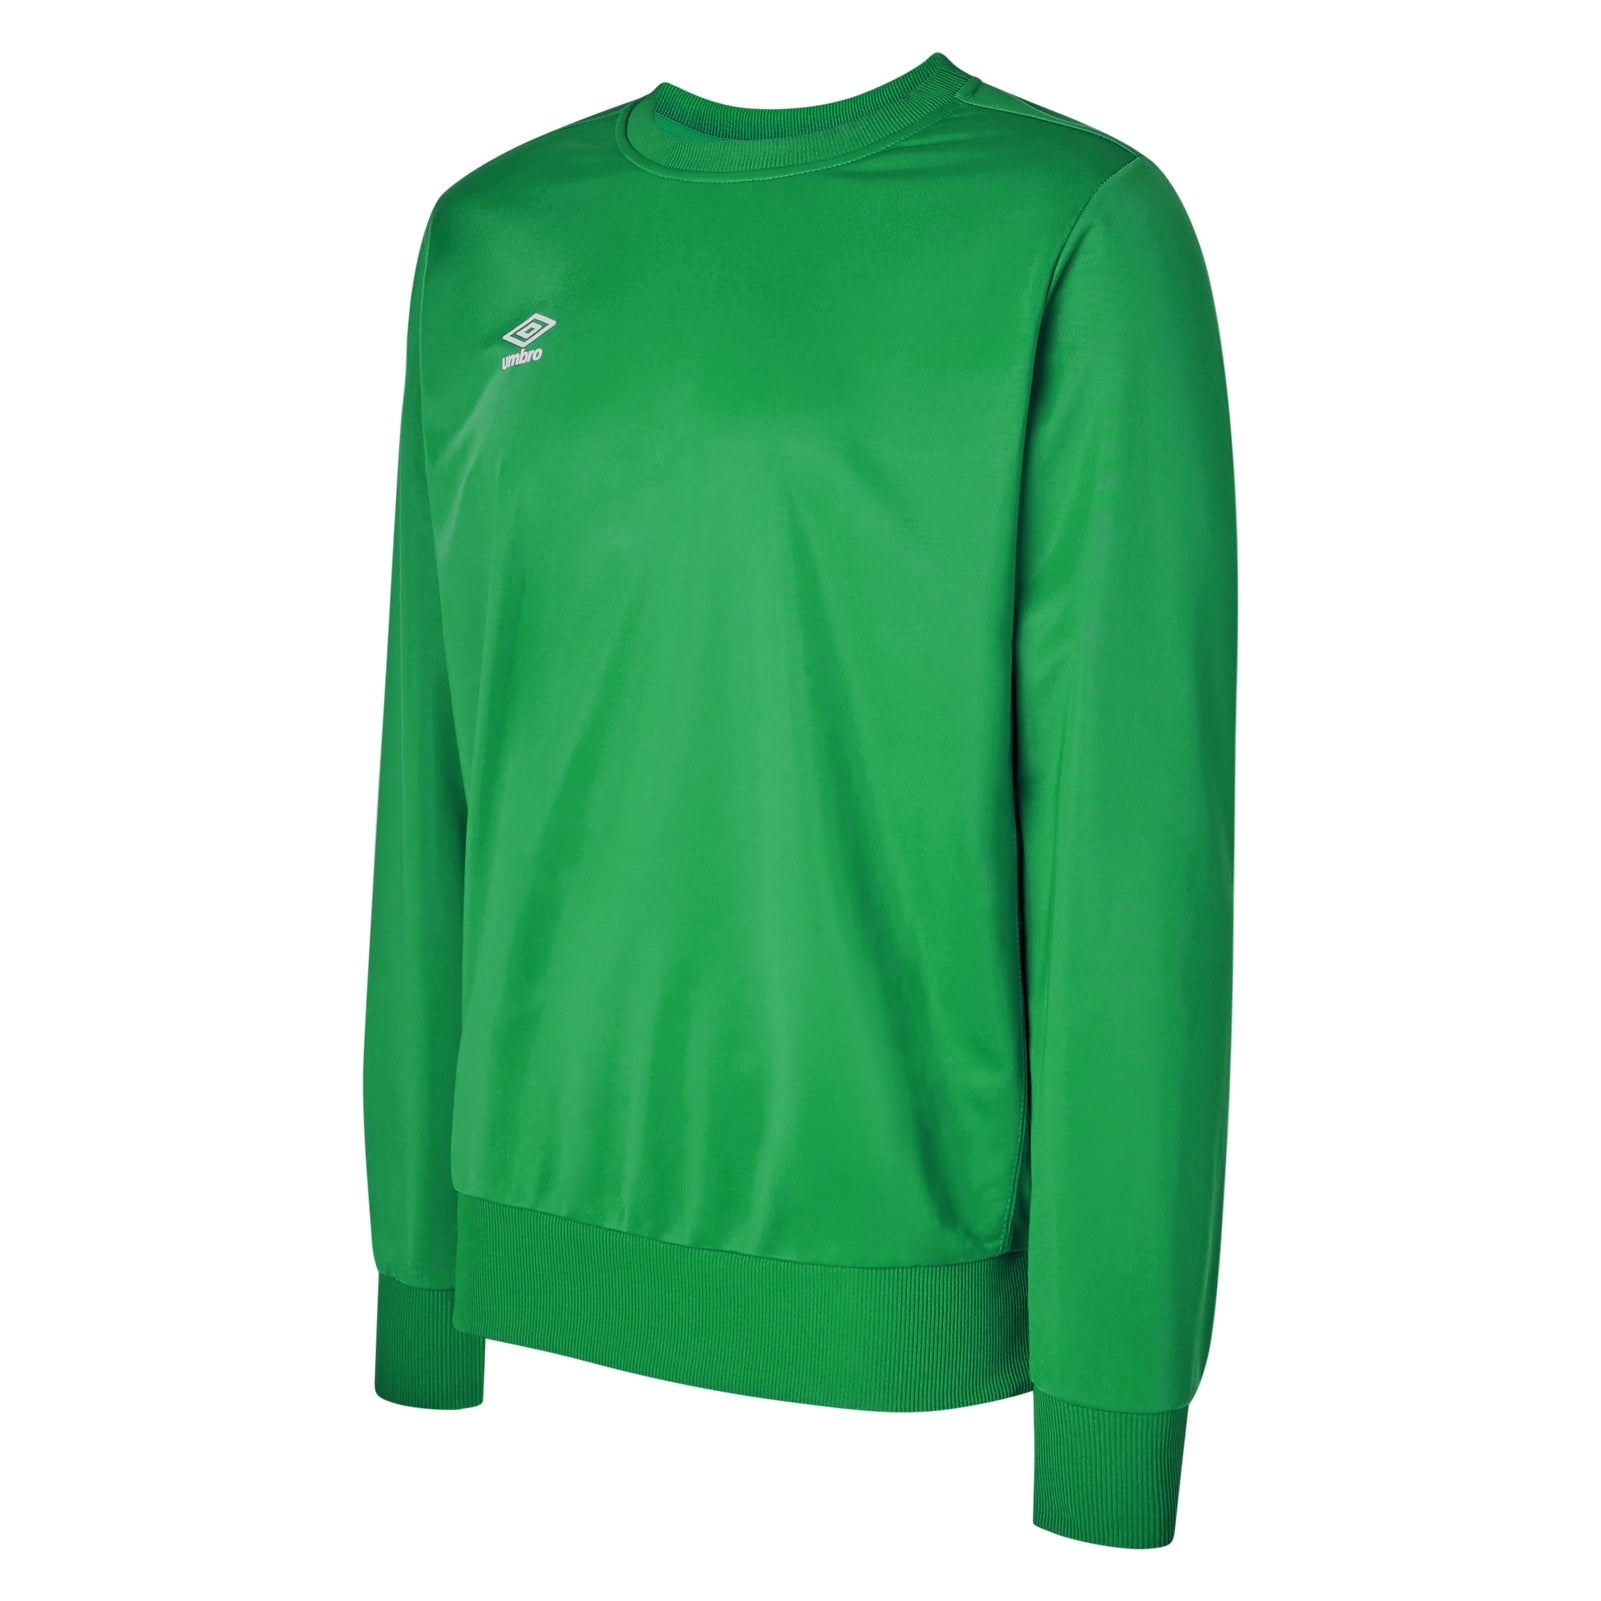 Umbro club Essential poly sweat in emerald green with white Diamond logo